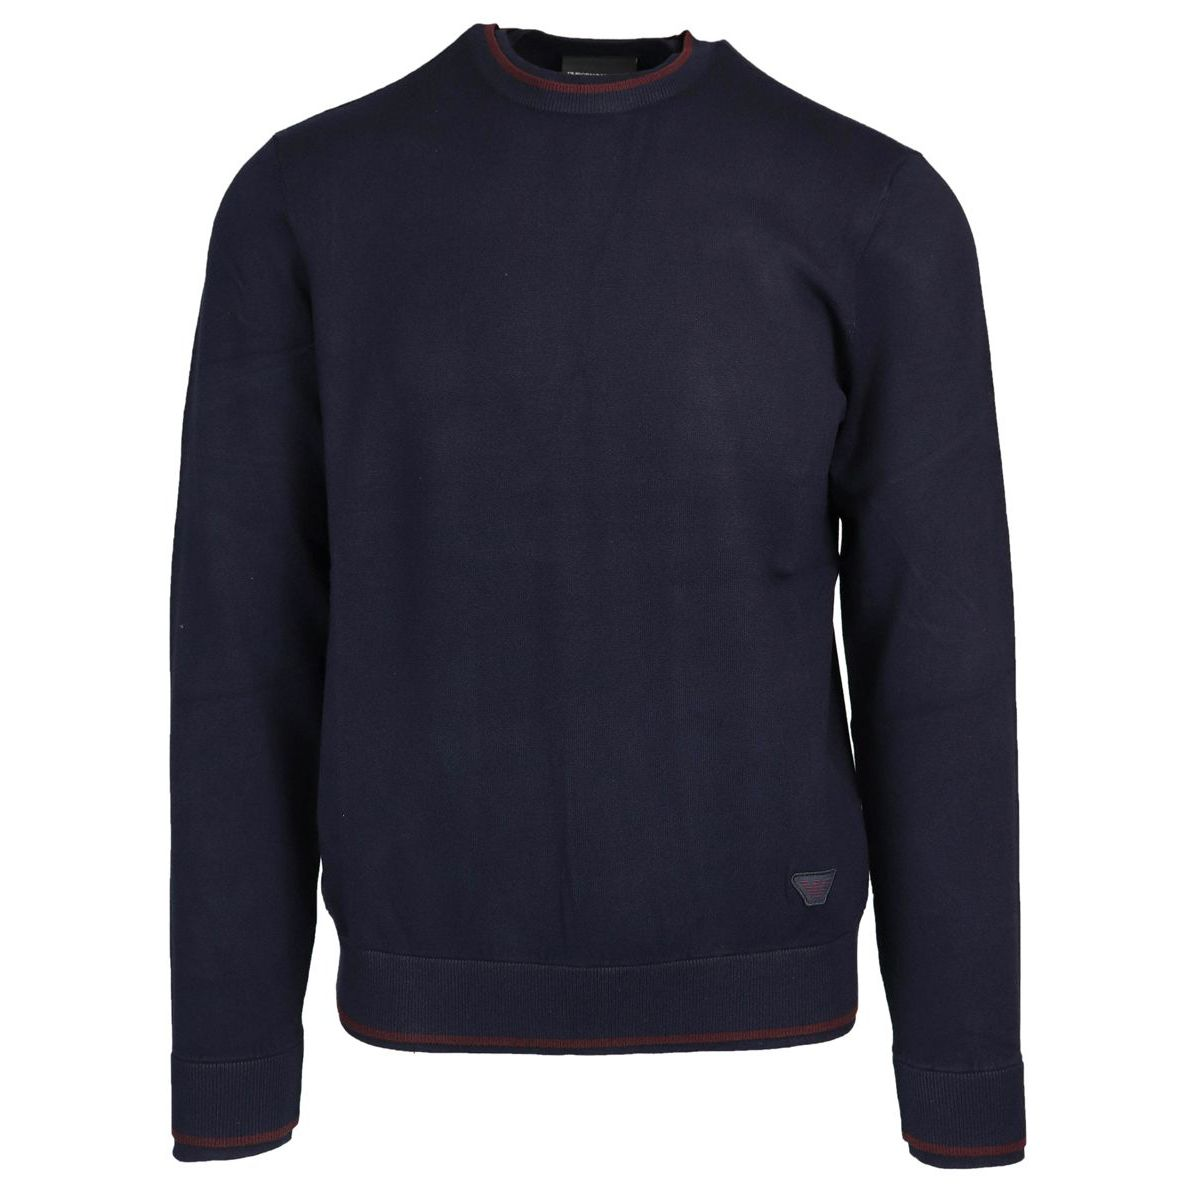 Crewneck sweater in viscose blend with contrasting edge logo Navy Emporio Armani